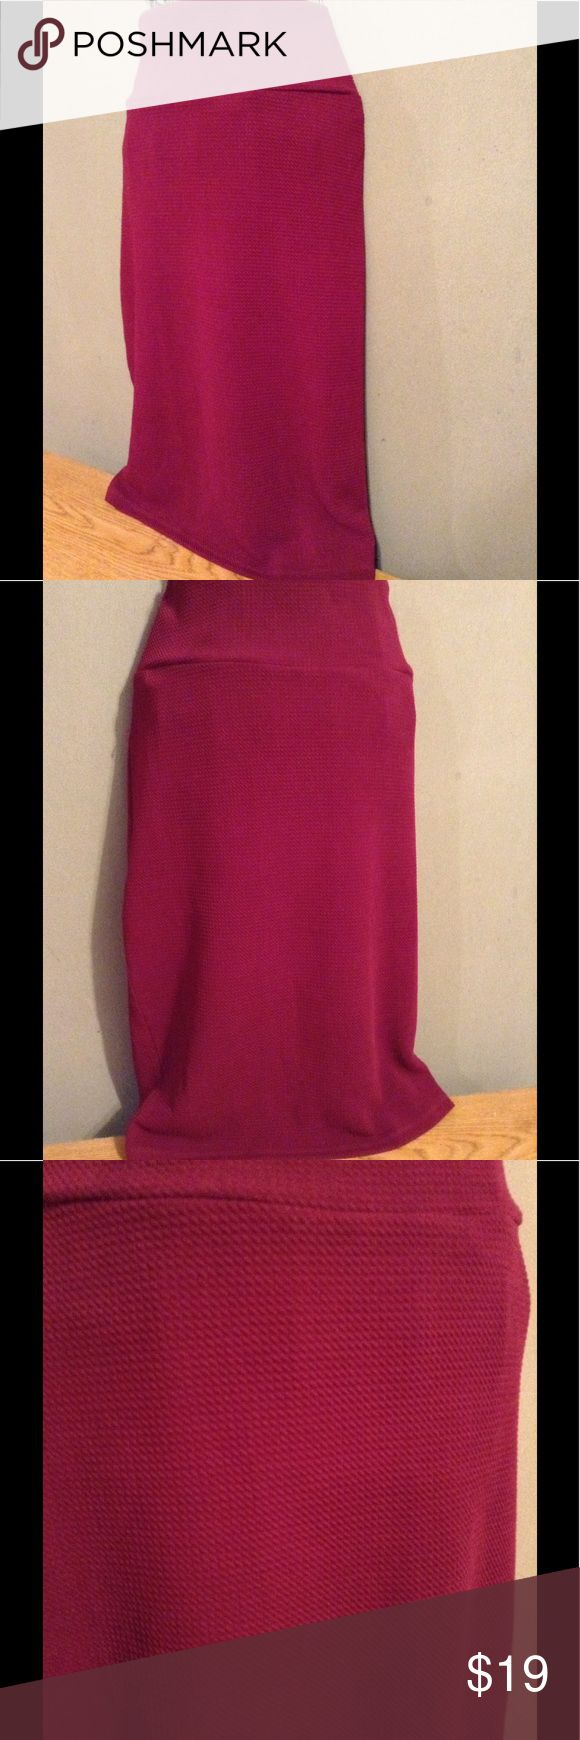 LLR Cassie Skirt Super comfy and really pretty maroon Cassie skirt. Waffle weave and light/not thick opaque material. Worn a handful of times and washed per LLR. There is an almost invisible dime sized darkening of fabrics as seen in pic 3 near waist band and priced accordingly though barely visible. Great deal! LuLaRoe Skirts Midi